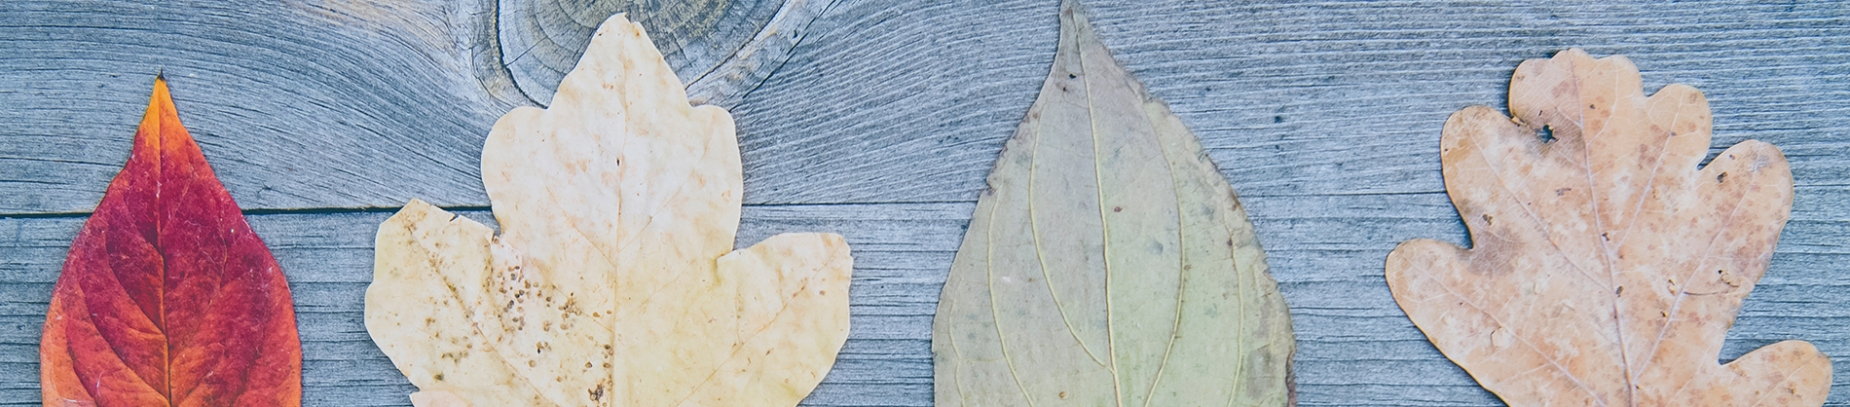 Different coloured leaves on a wooden table